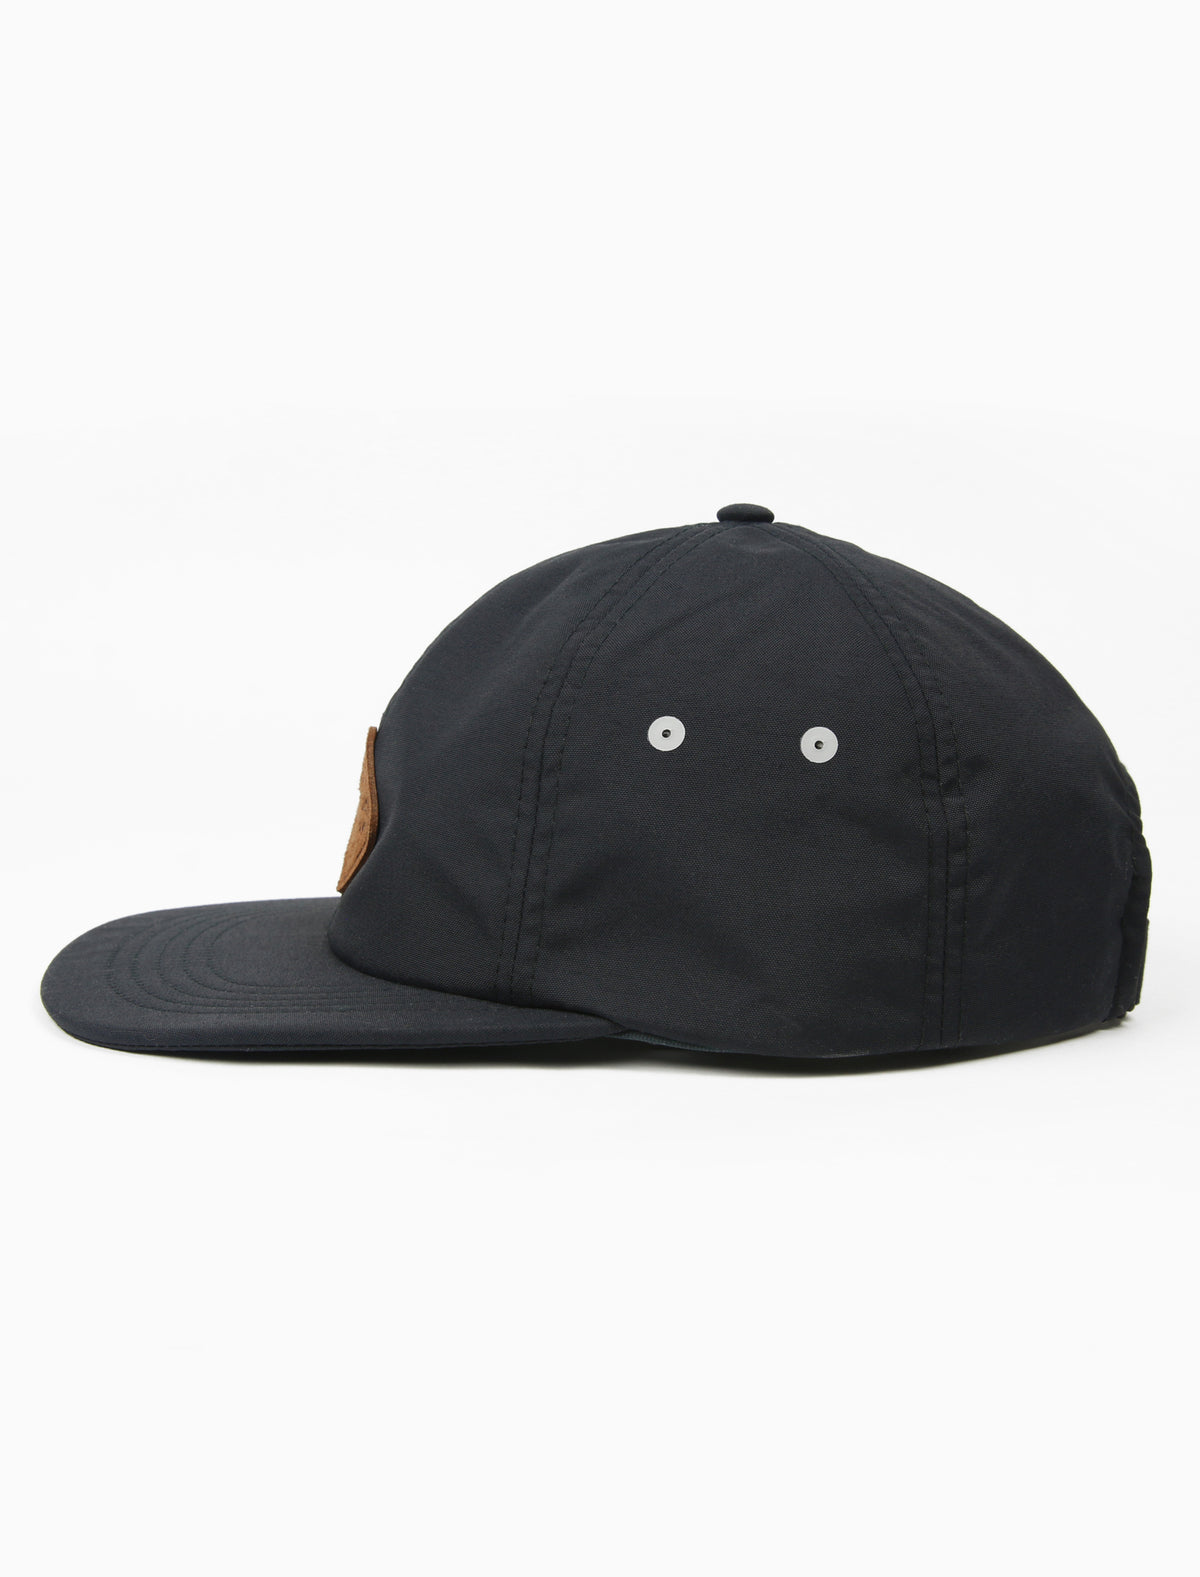 acrylick headwear 2019 midnighters packable hat, staydri, flexable hat hat black leather patch (2206889017455)